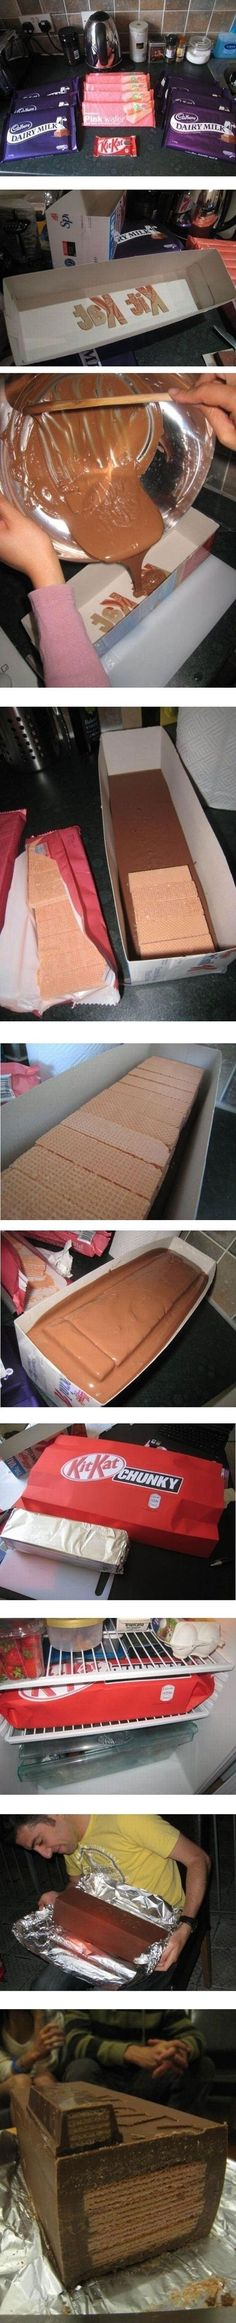 How to make a giant Kit kat